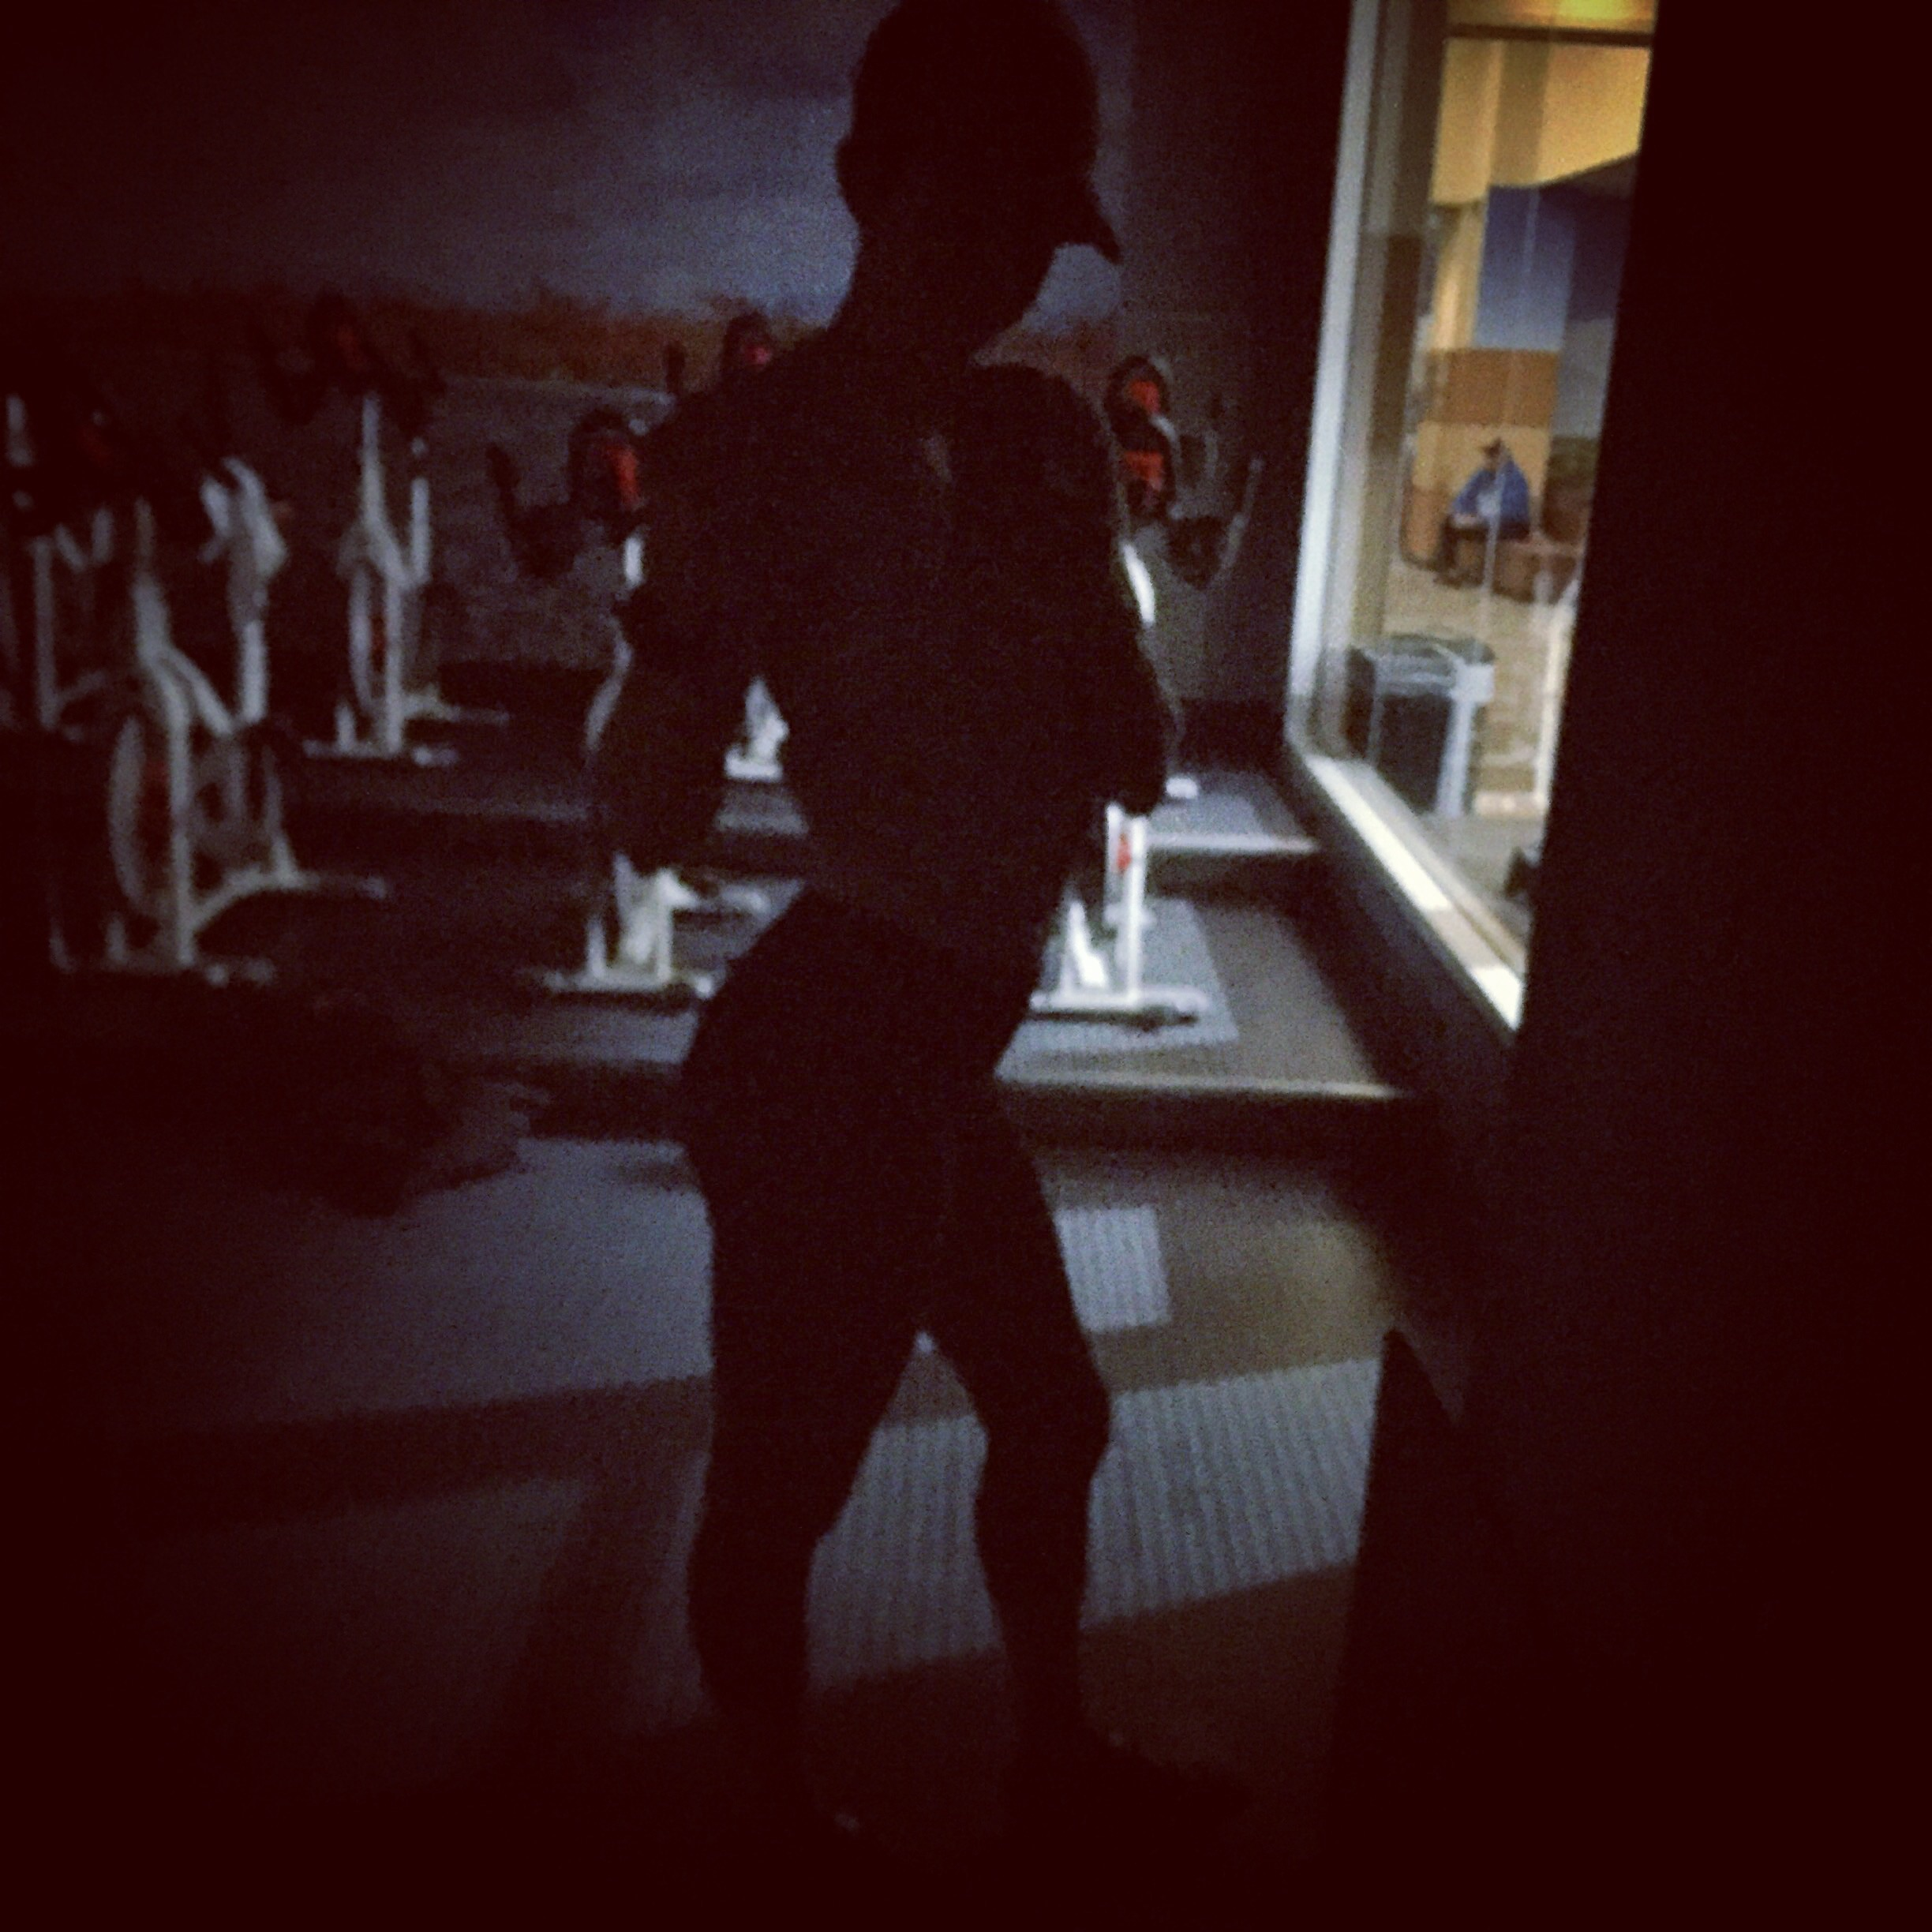 Being that creep at 5 in the morning in the dark cycle room!